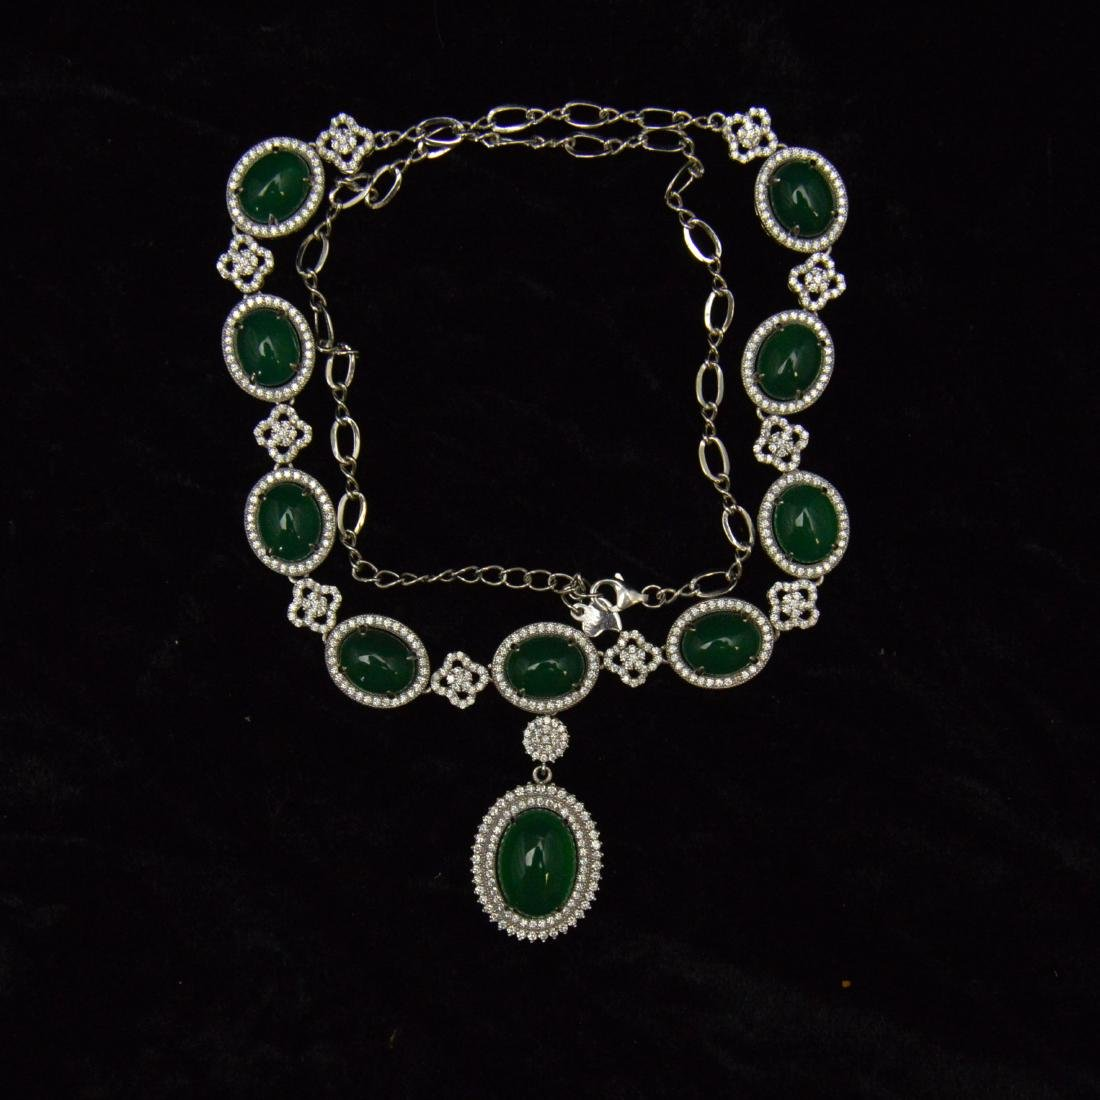 Green Agate Necklace - 4